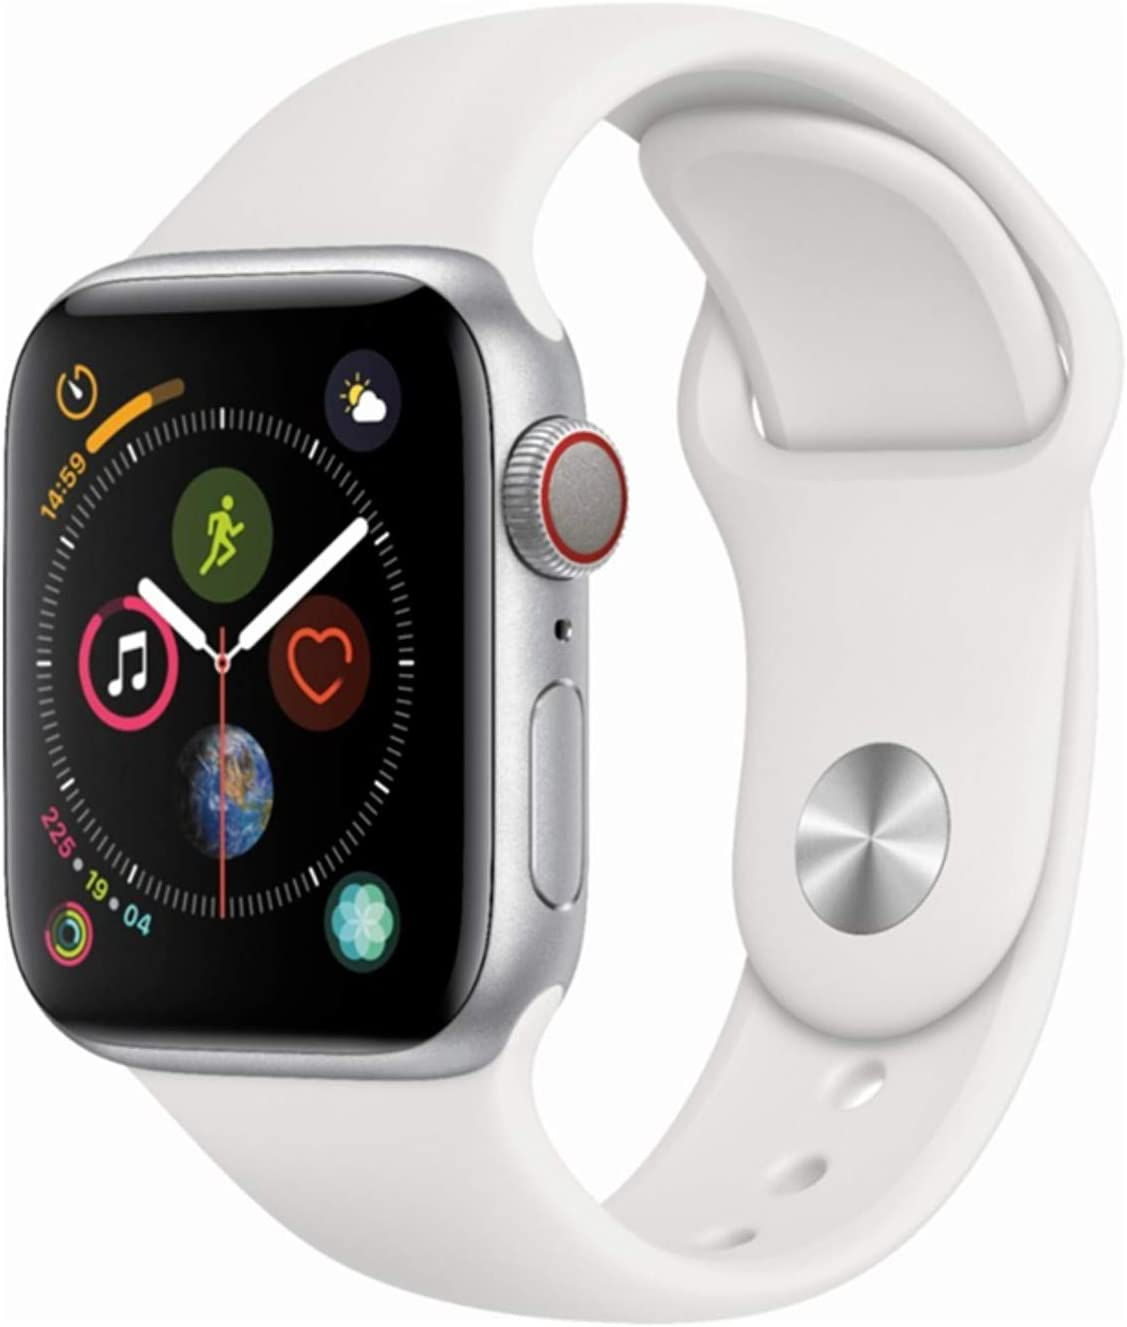 Apple Watch Series 4 (GPS + Cellular, 40MM) - Silver Aluminum Case with White Sport Band (Renewed)